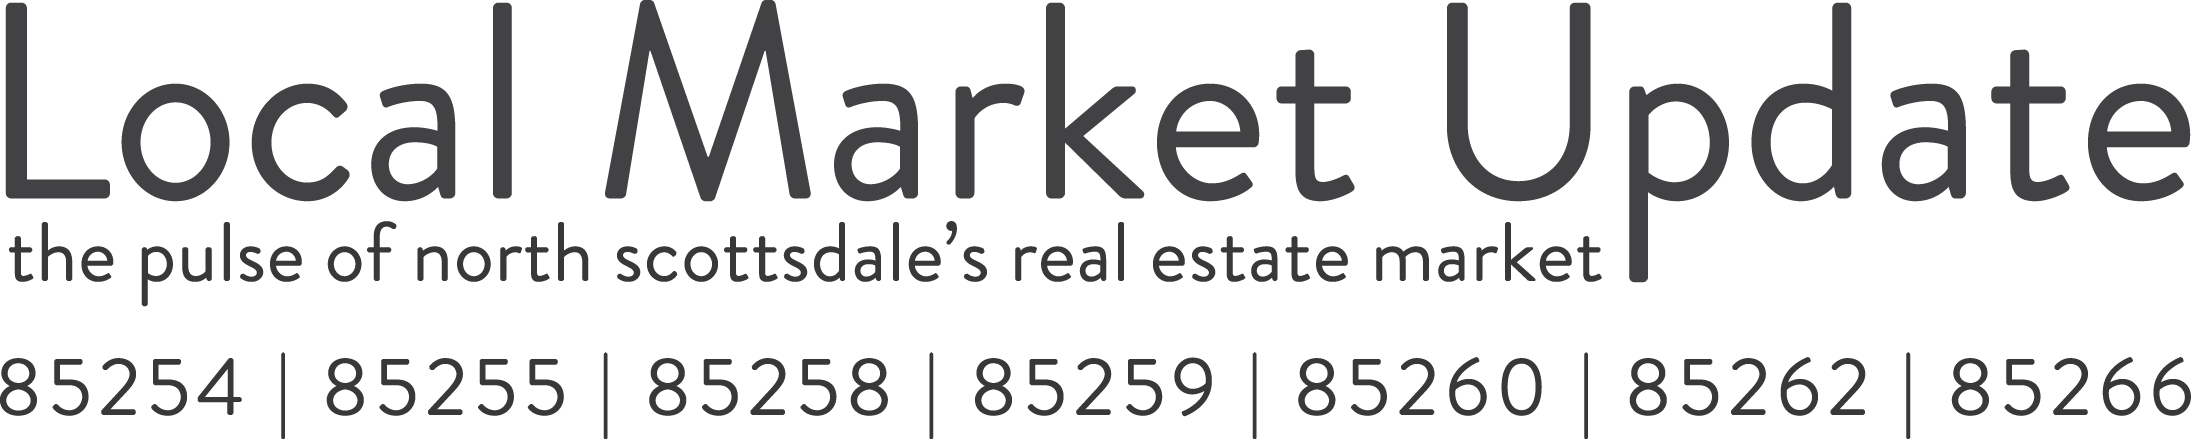 Grayhawk 85255 Real Estate Market Update - Monday December 11, 2017